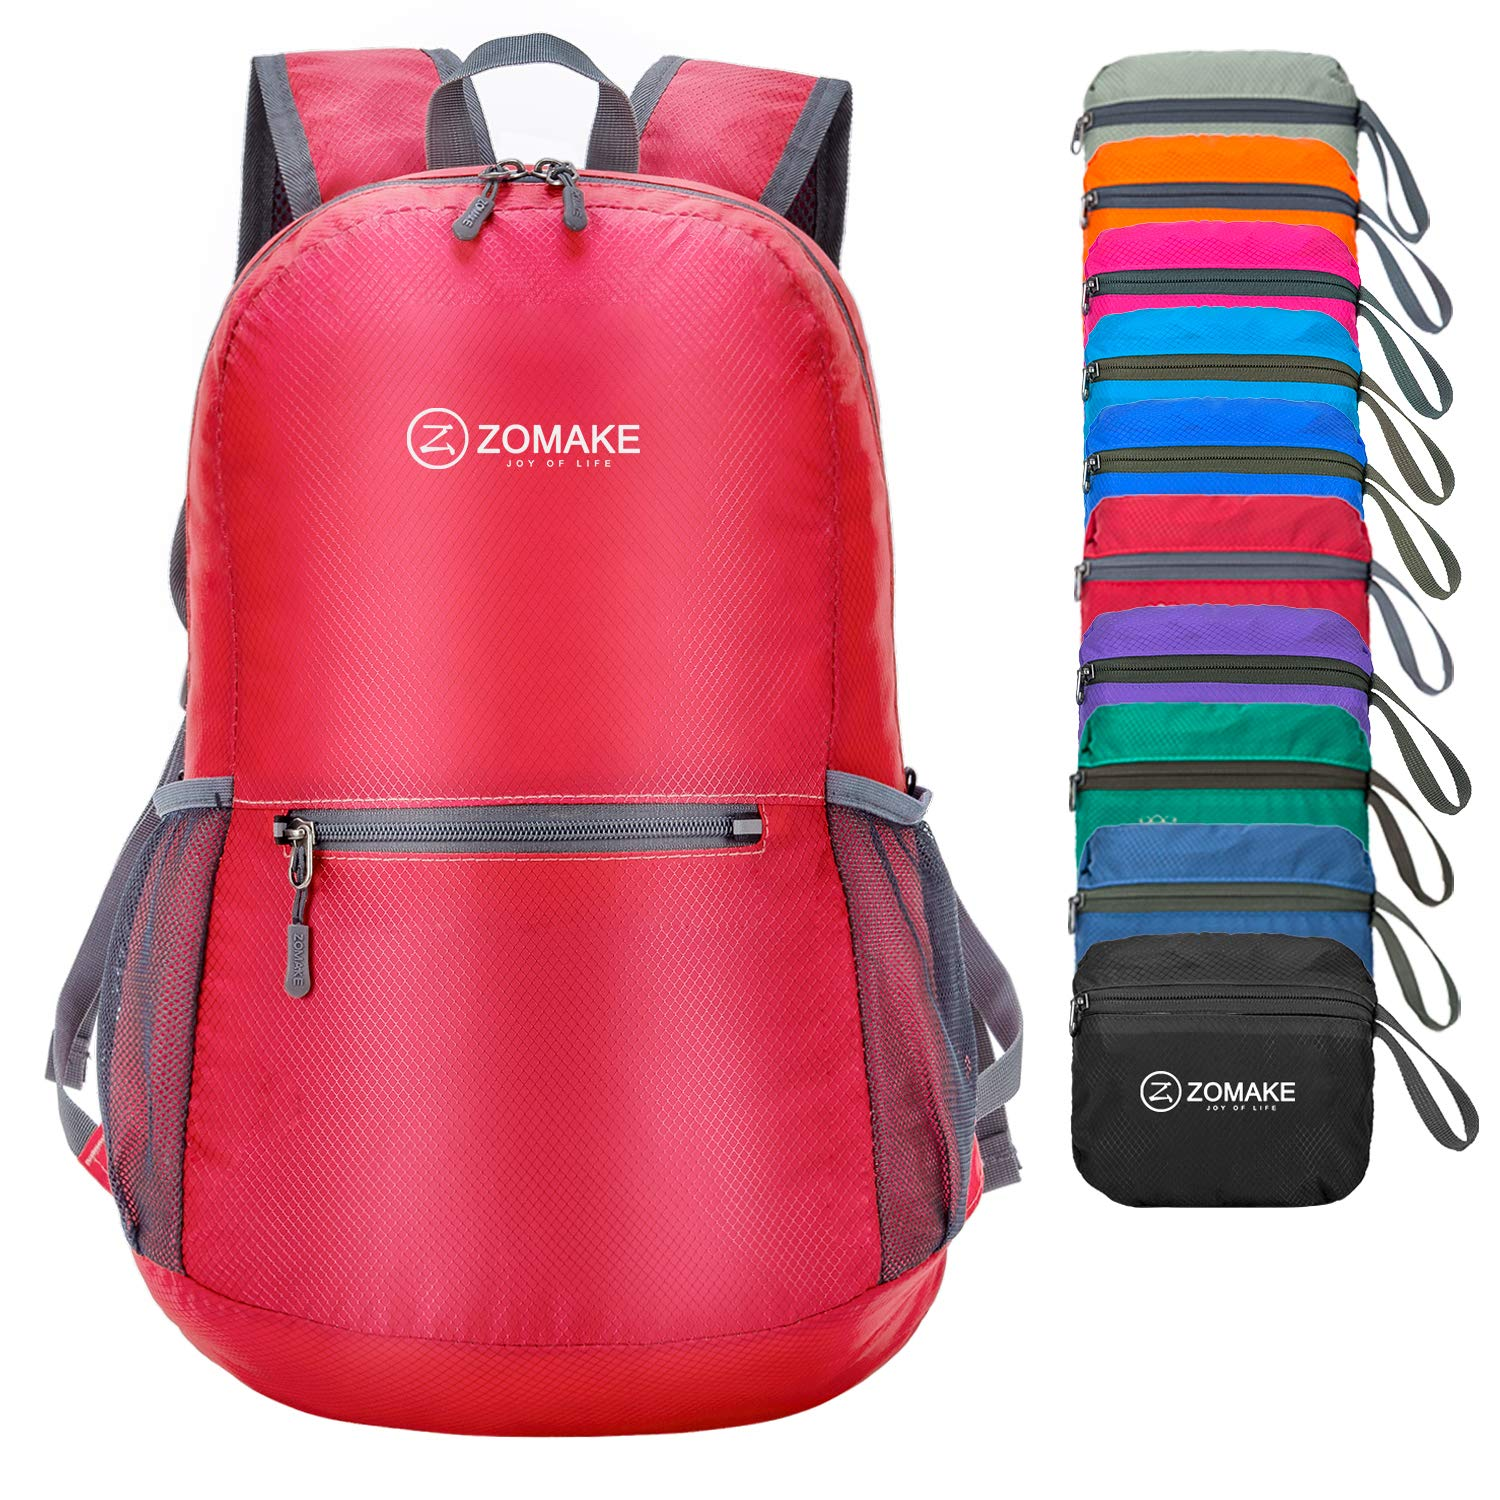 Top 10 Best Backpack For Amusement Parks - Buyer's Guide 1